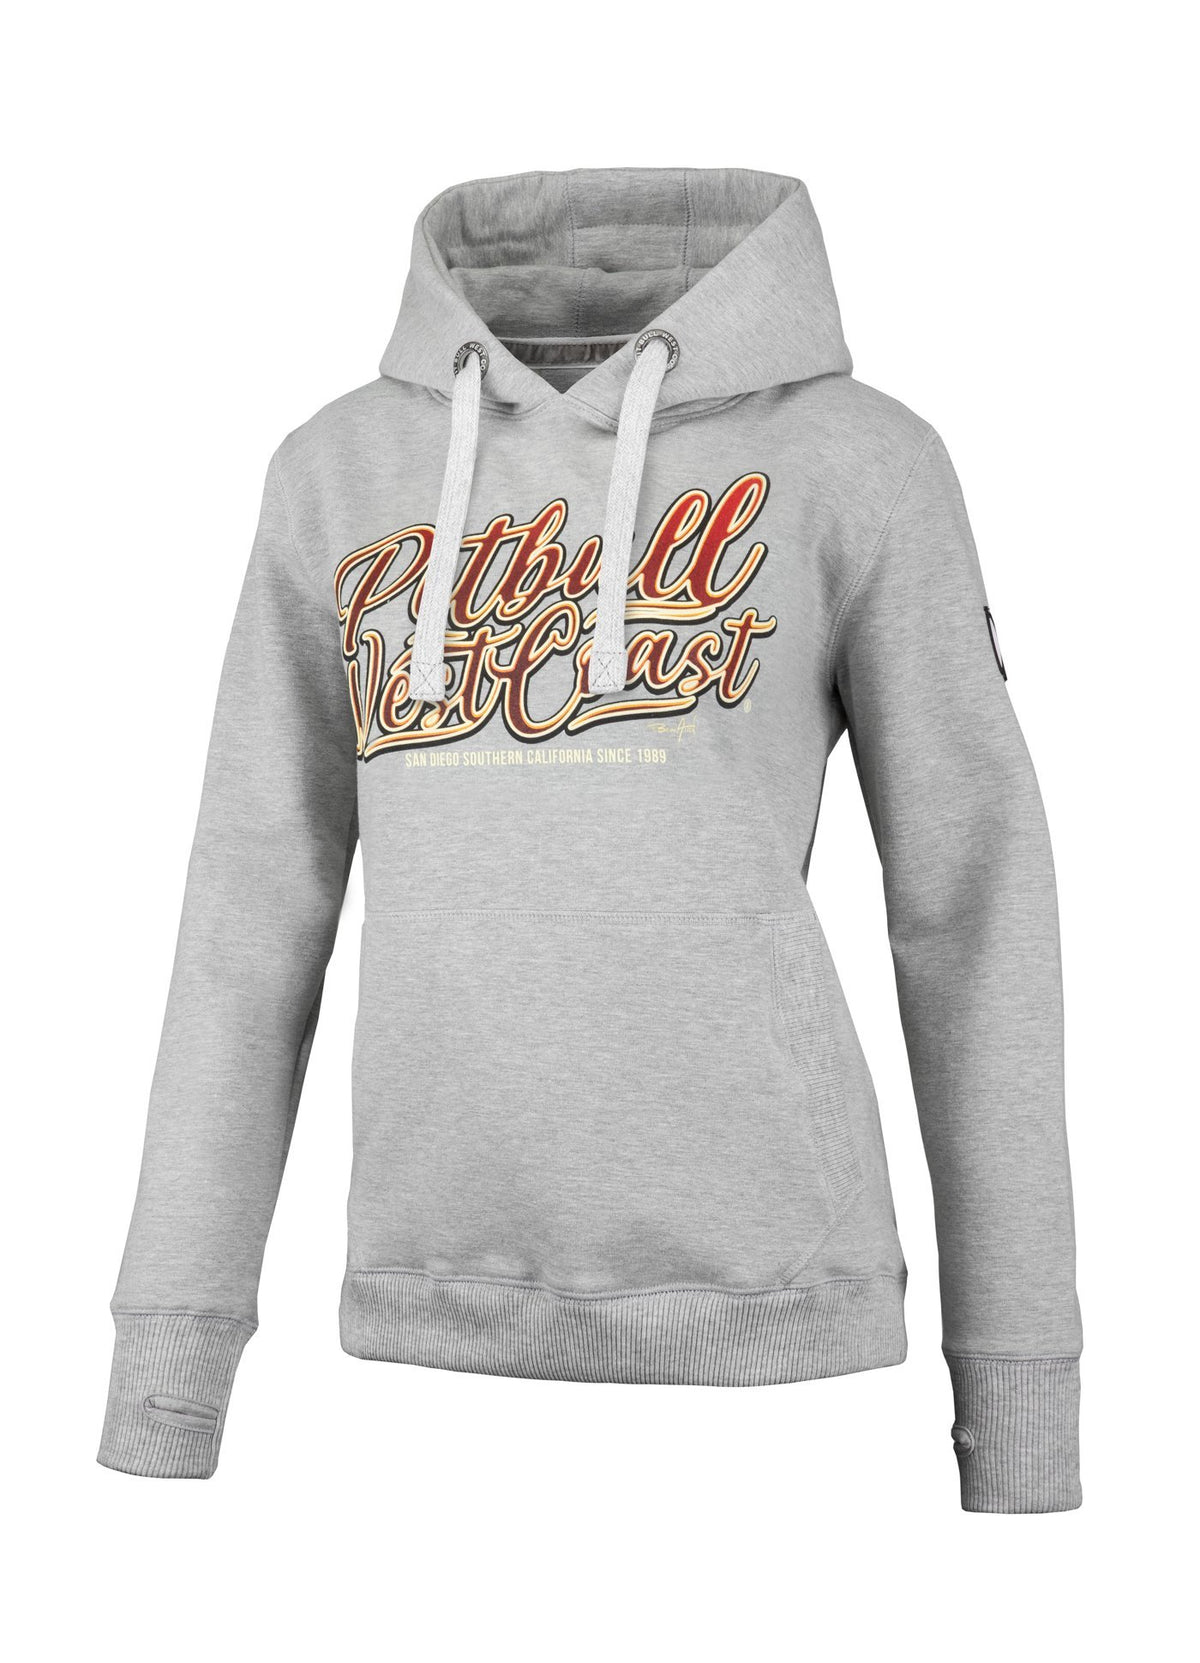 WOMEN HOODIE City of Dogs GREY MLG - Pitbull West Coast U.S.A.